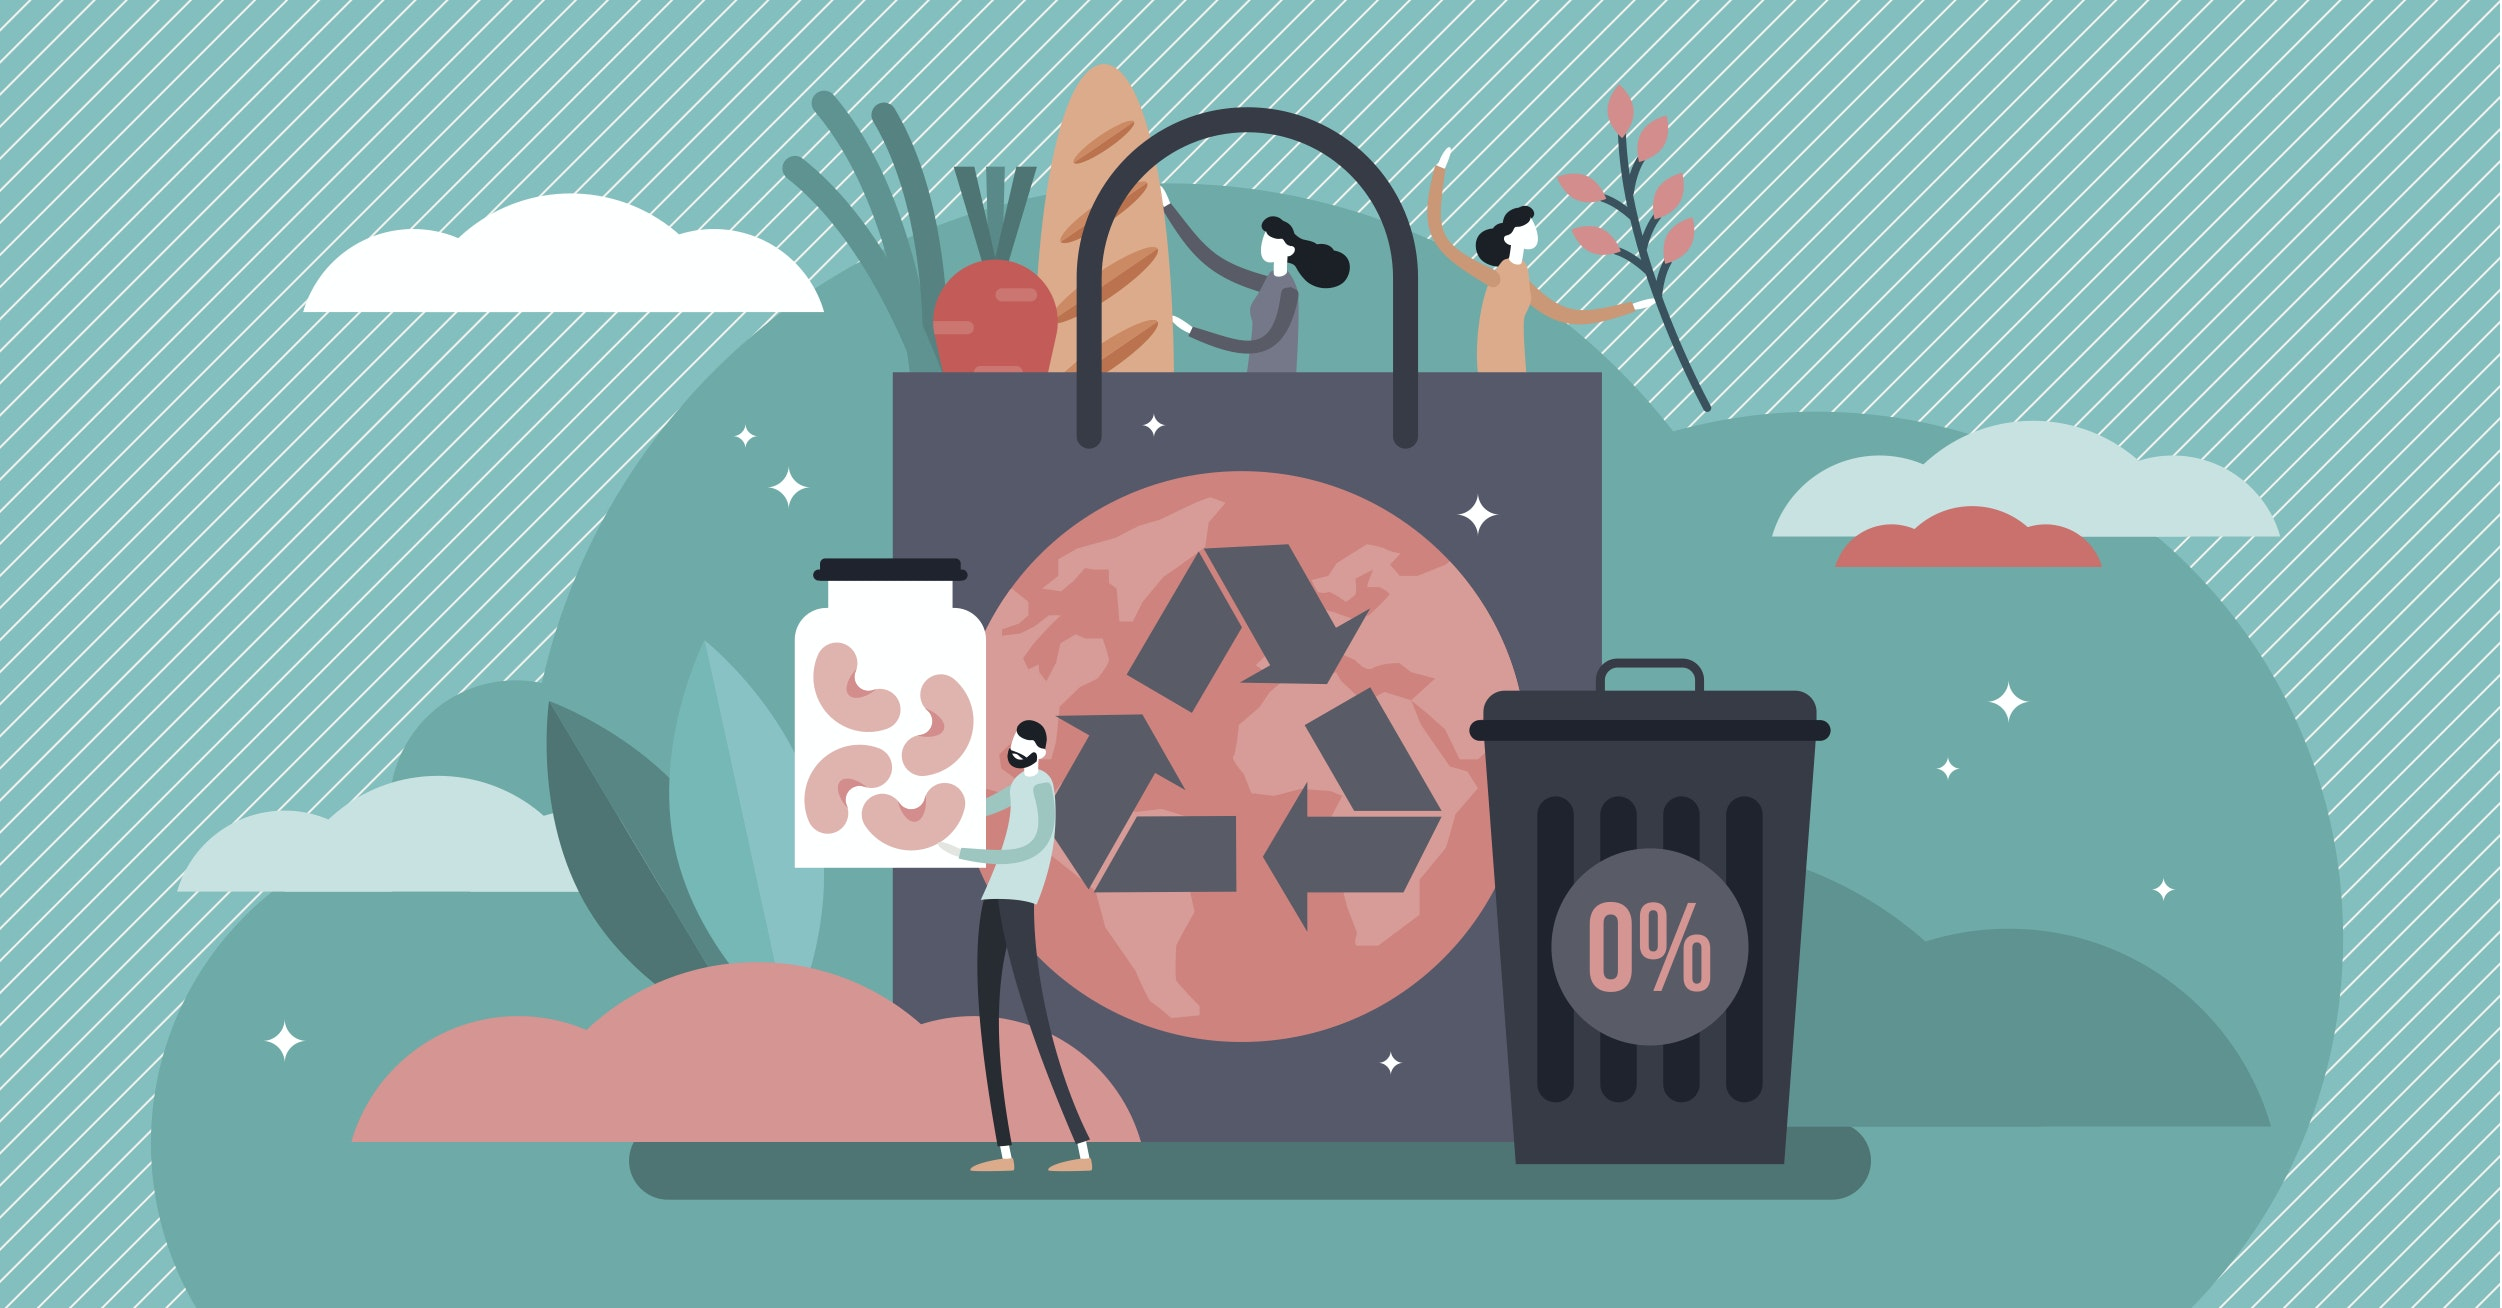 A graphic showing a large shopping bag with the recycling logo in centre, a rubbish bin with 0% annotated, and 3 people holding plastic-free food.